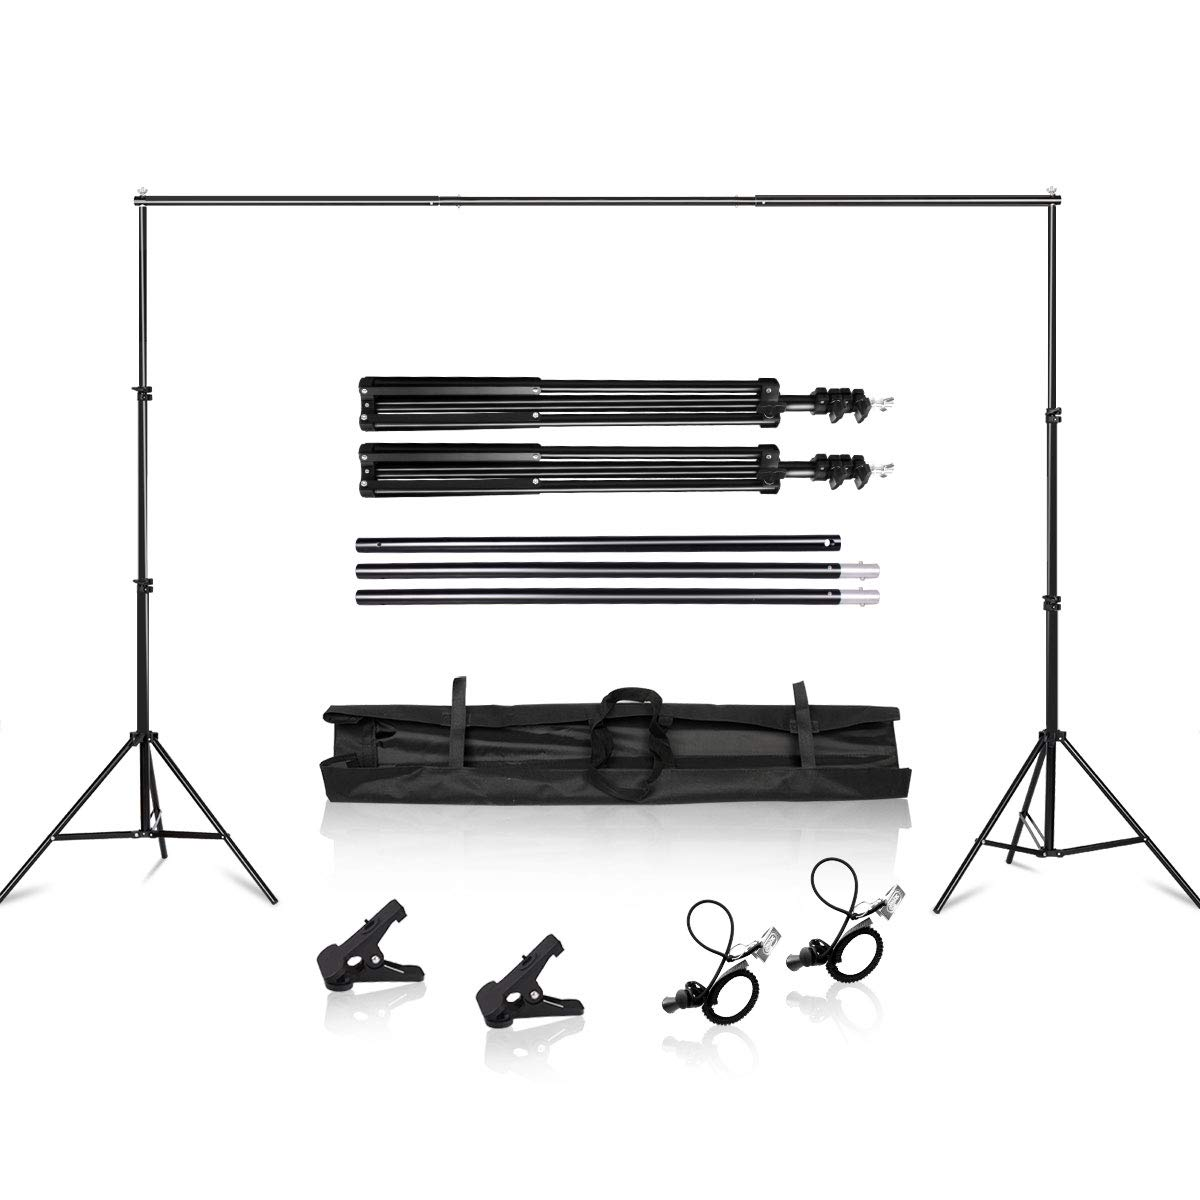 Heavy Duty Background Stand, 2x2M Backdrop Support System Kit with Carry Bag for Photography Photo Video Studio,Photography Studio by SH